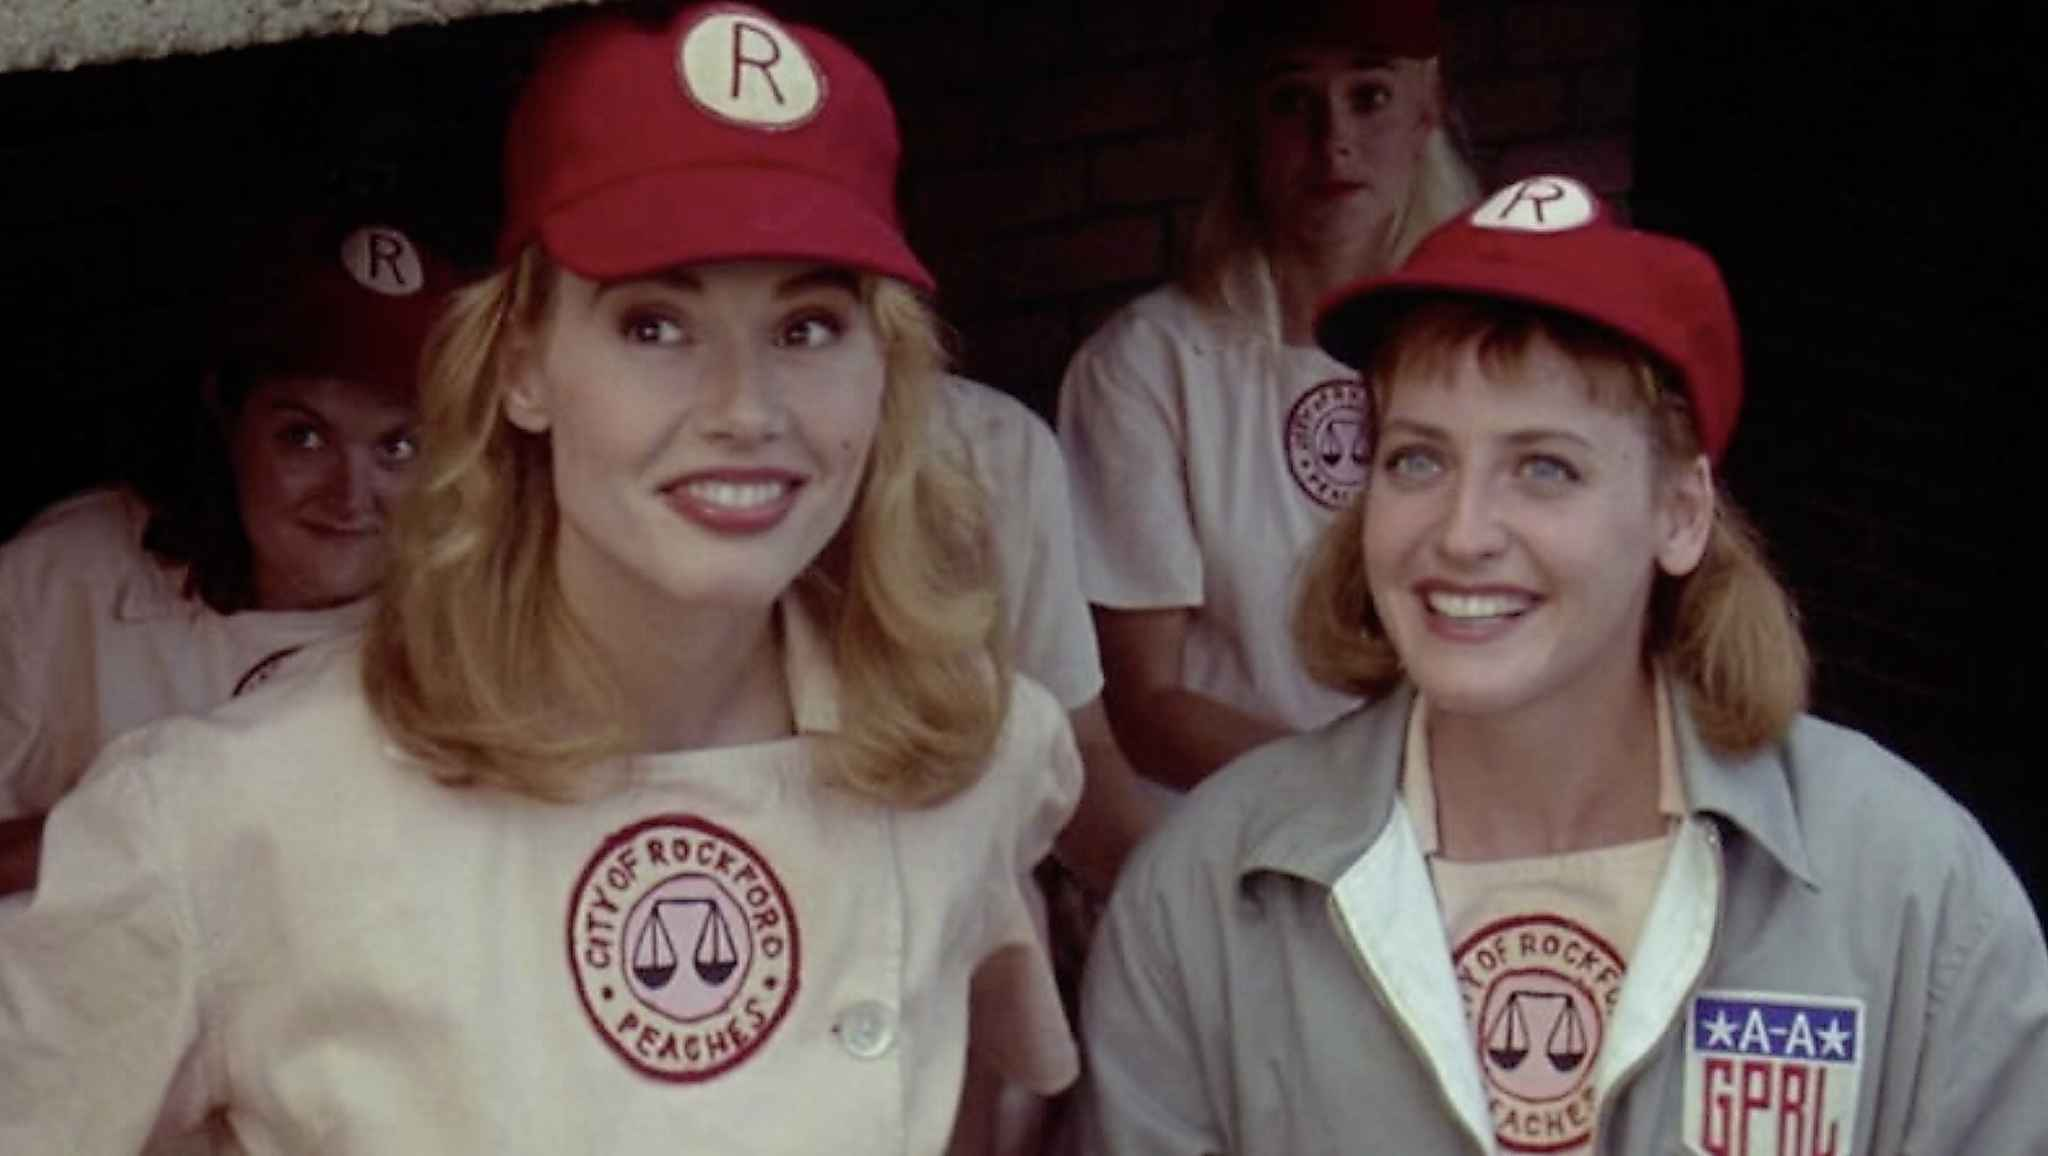 Geena Davis, Lori Petty, Megan Cavanagh, and Freddie Simpson in A League of Their Own. (Columbia Pictures Corporation/TNS)